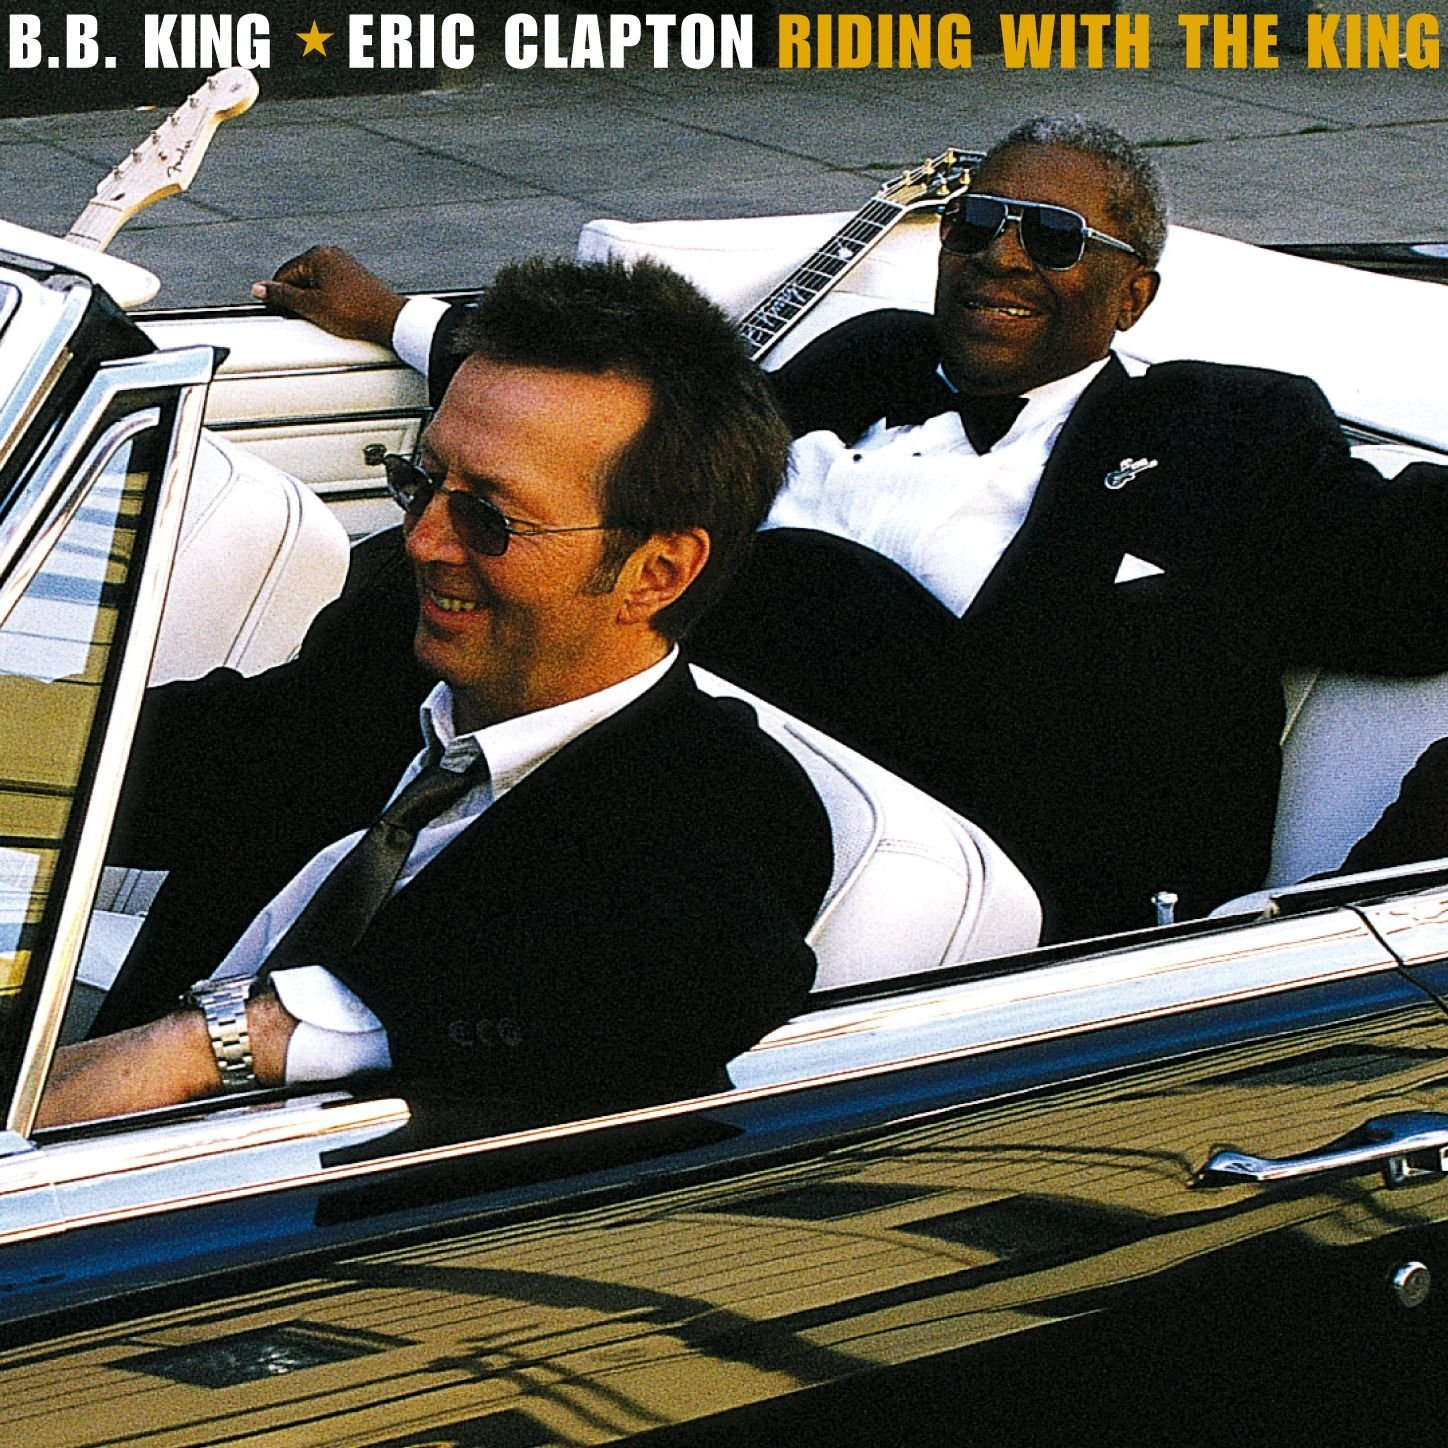 B.B. King & Eric Clapton - Riding With The King [2xLP]